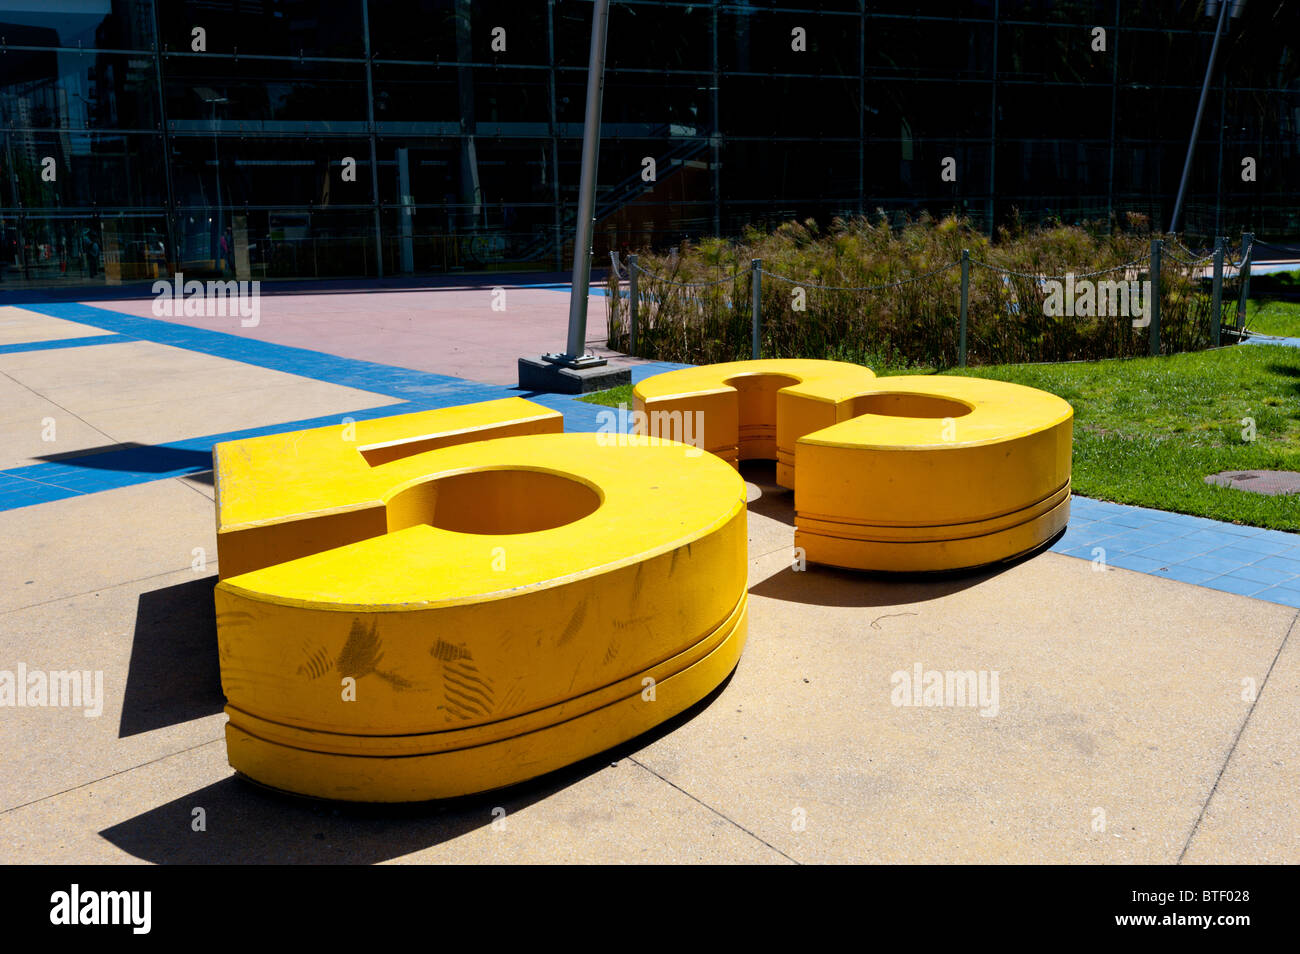 Bold yellow number 53 on the ground. - Stock Image